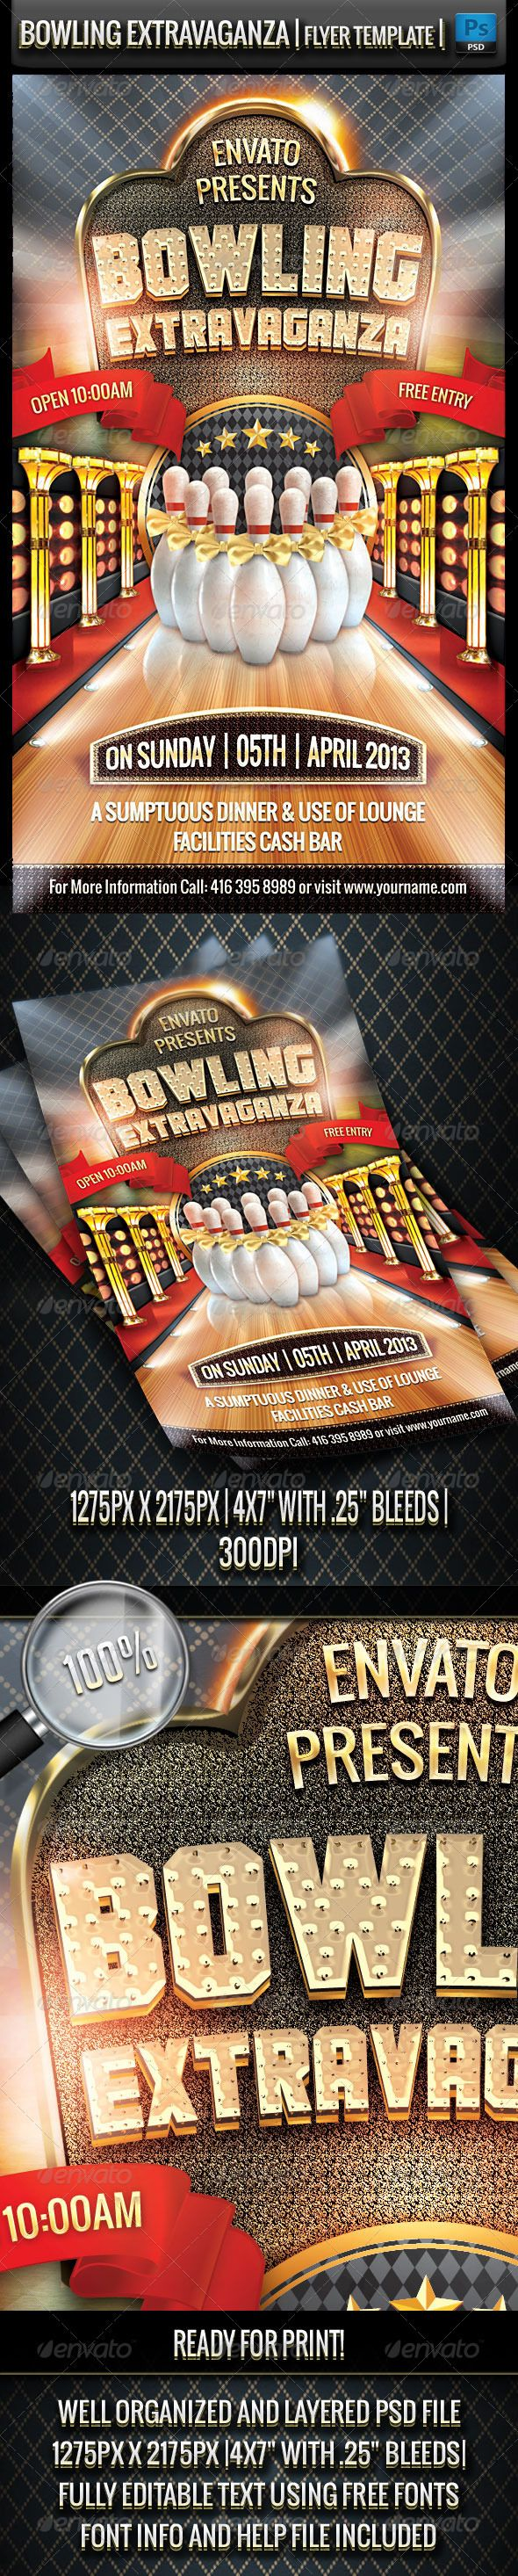 Bowling Extravaganza Flyer Template  #extravagant #fancy #fun • Click here to download ! http://graphicriver.net/item/bowling-extravaganza-flyer-template/3795290?s_rank=164&ref=pxcr